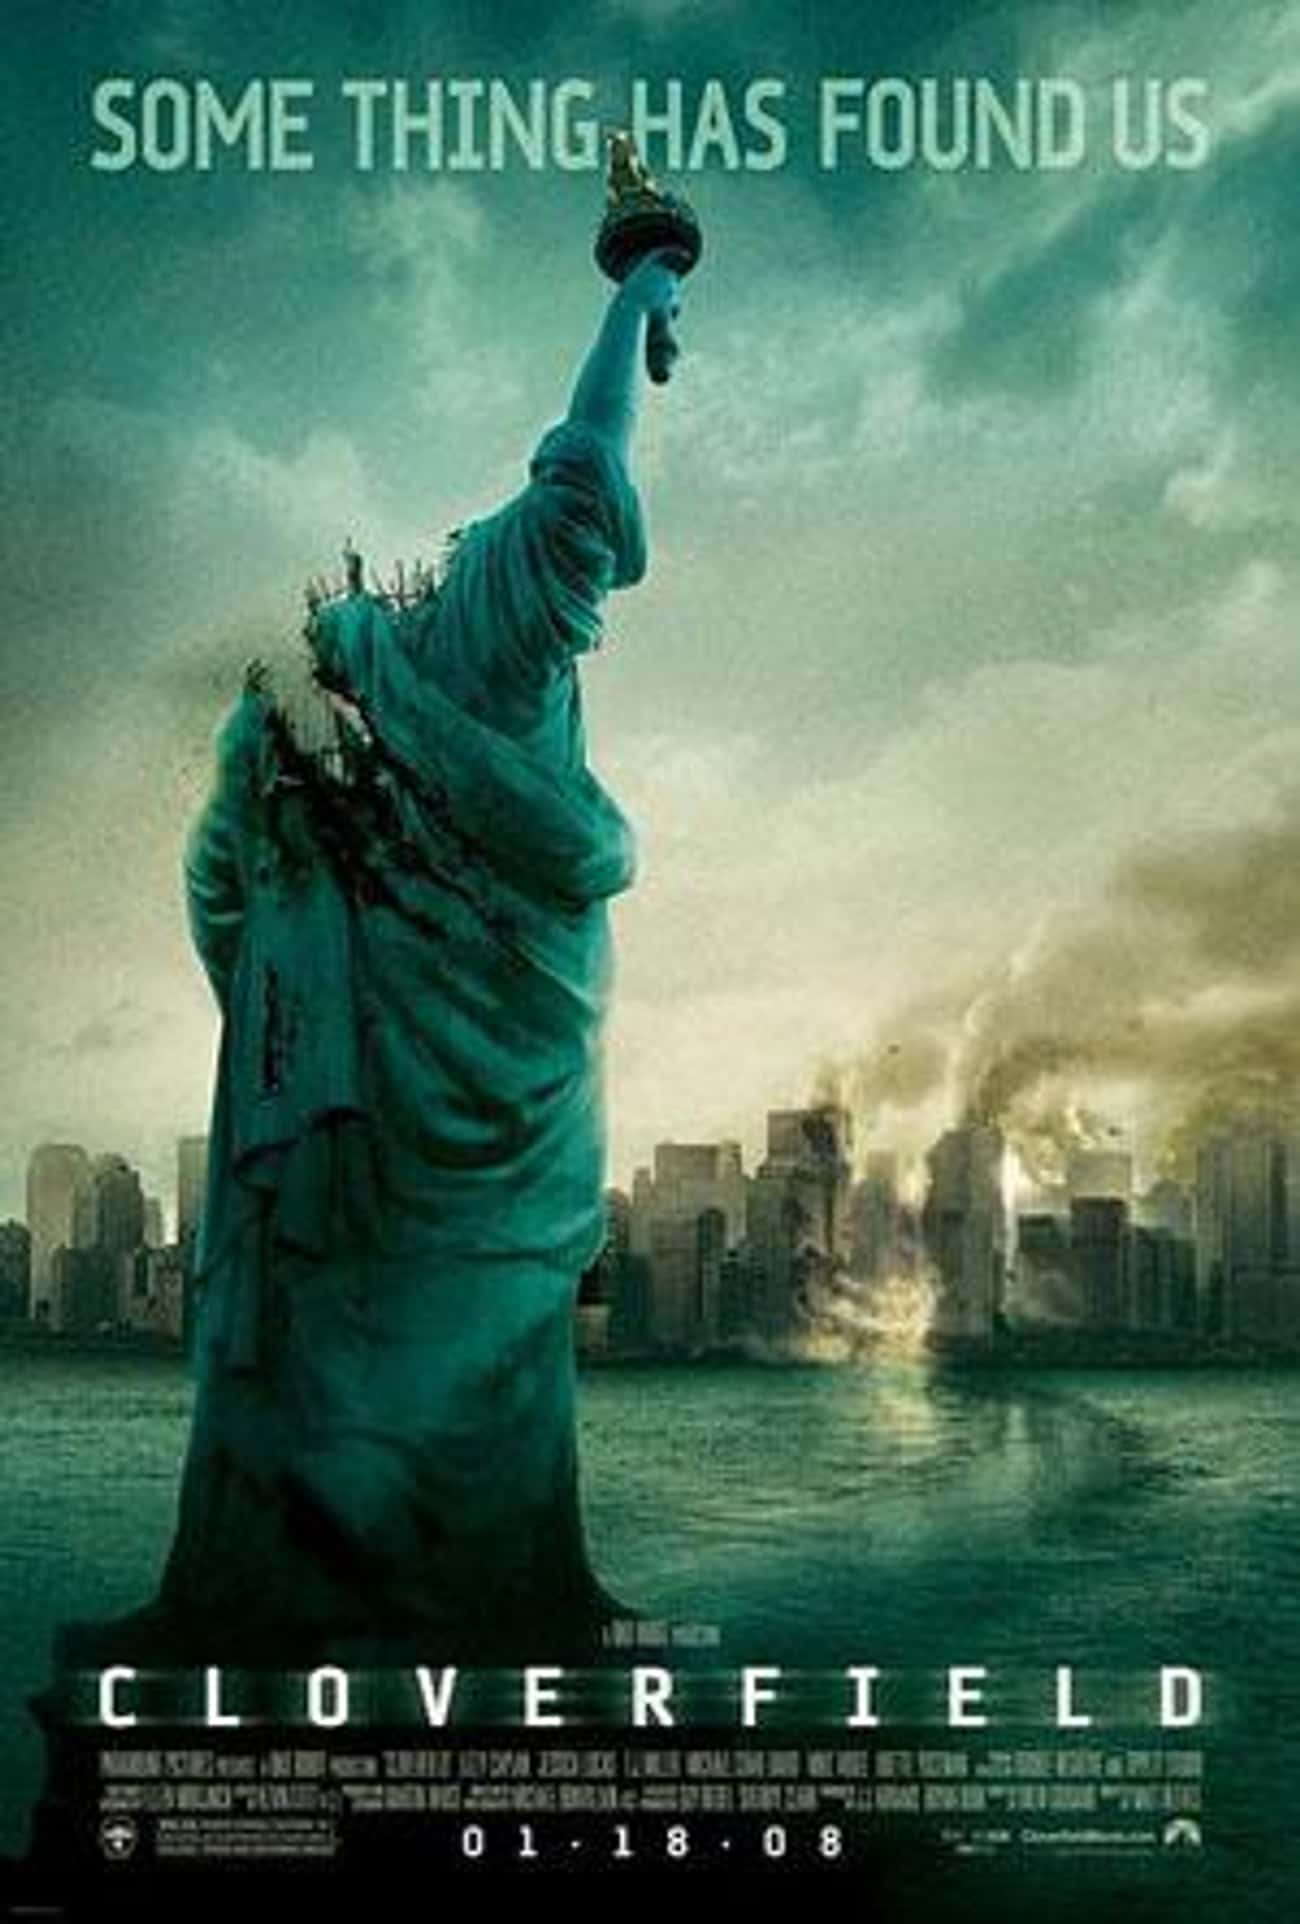 Cloverfield is listed (or ranked) 3 on the list The Best CGI Horror Movies